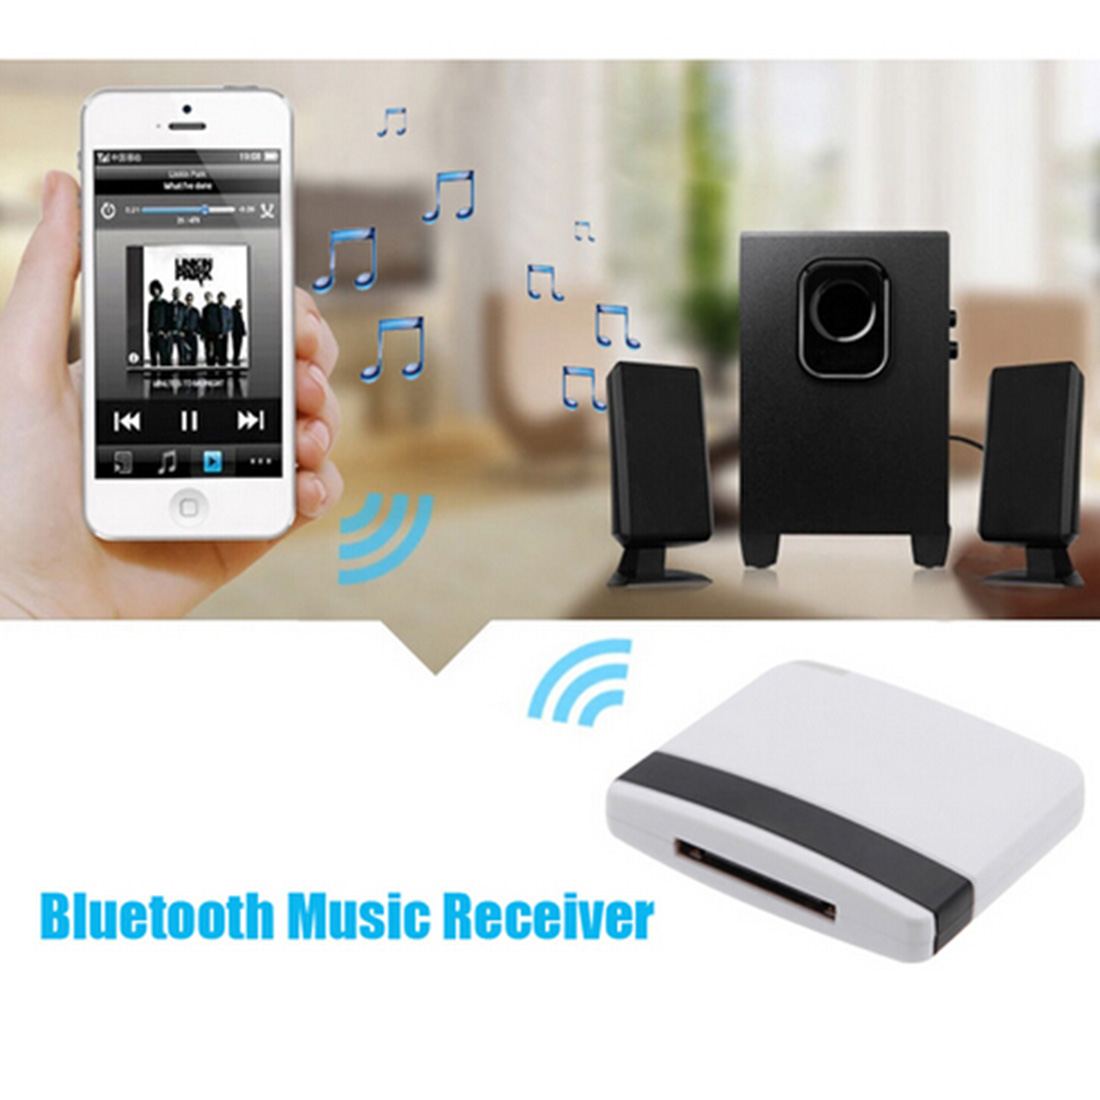 NOYOKERE Hot Sale Bluetooth A2DP 30Pin Music Receiver Audio Adapter Dock for iPad iPod iPhone bluetooth a2dp music audio 30 pin receiver adapter for ipod iphone ipad speaker dock audio music receiver black eletronic hot